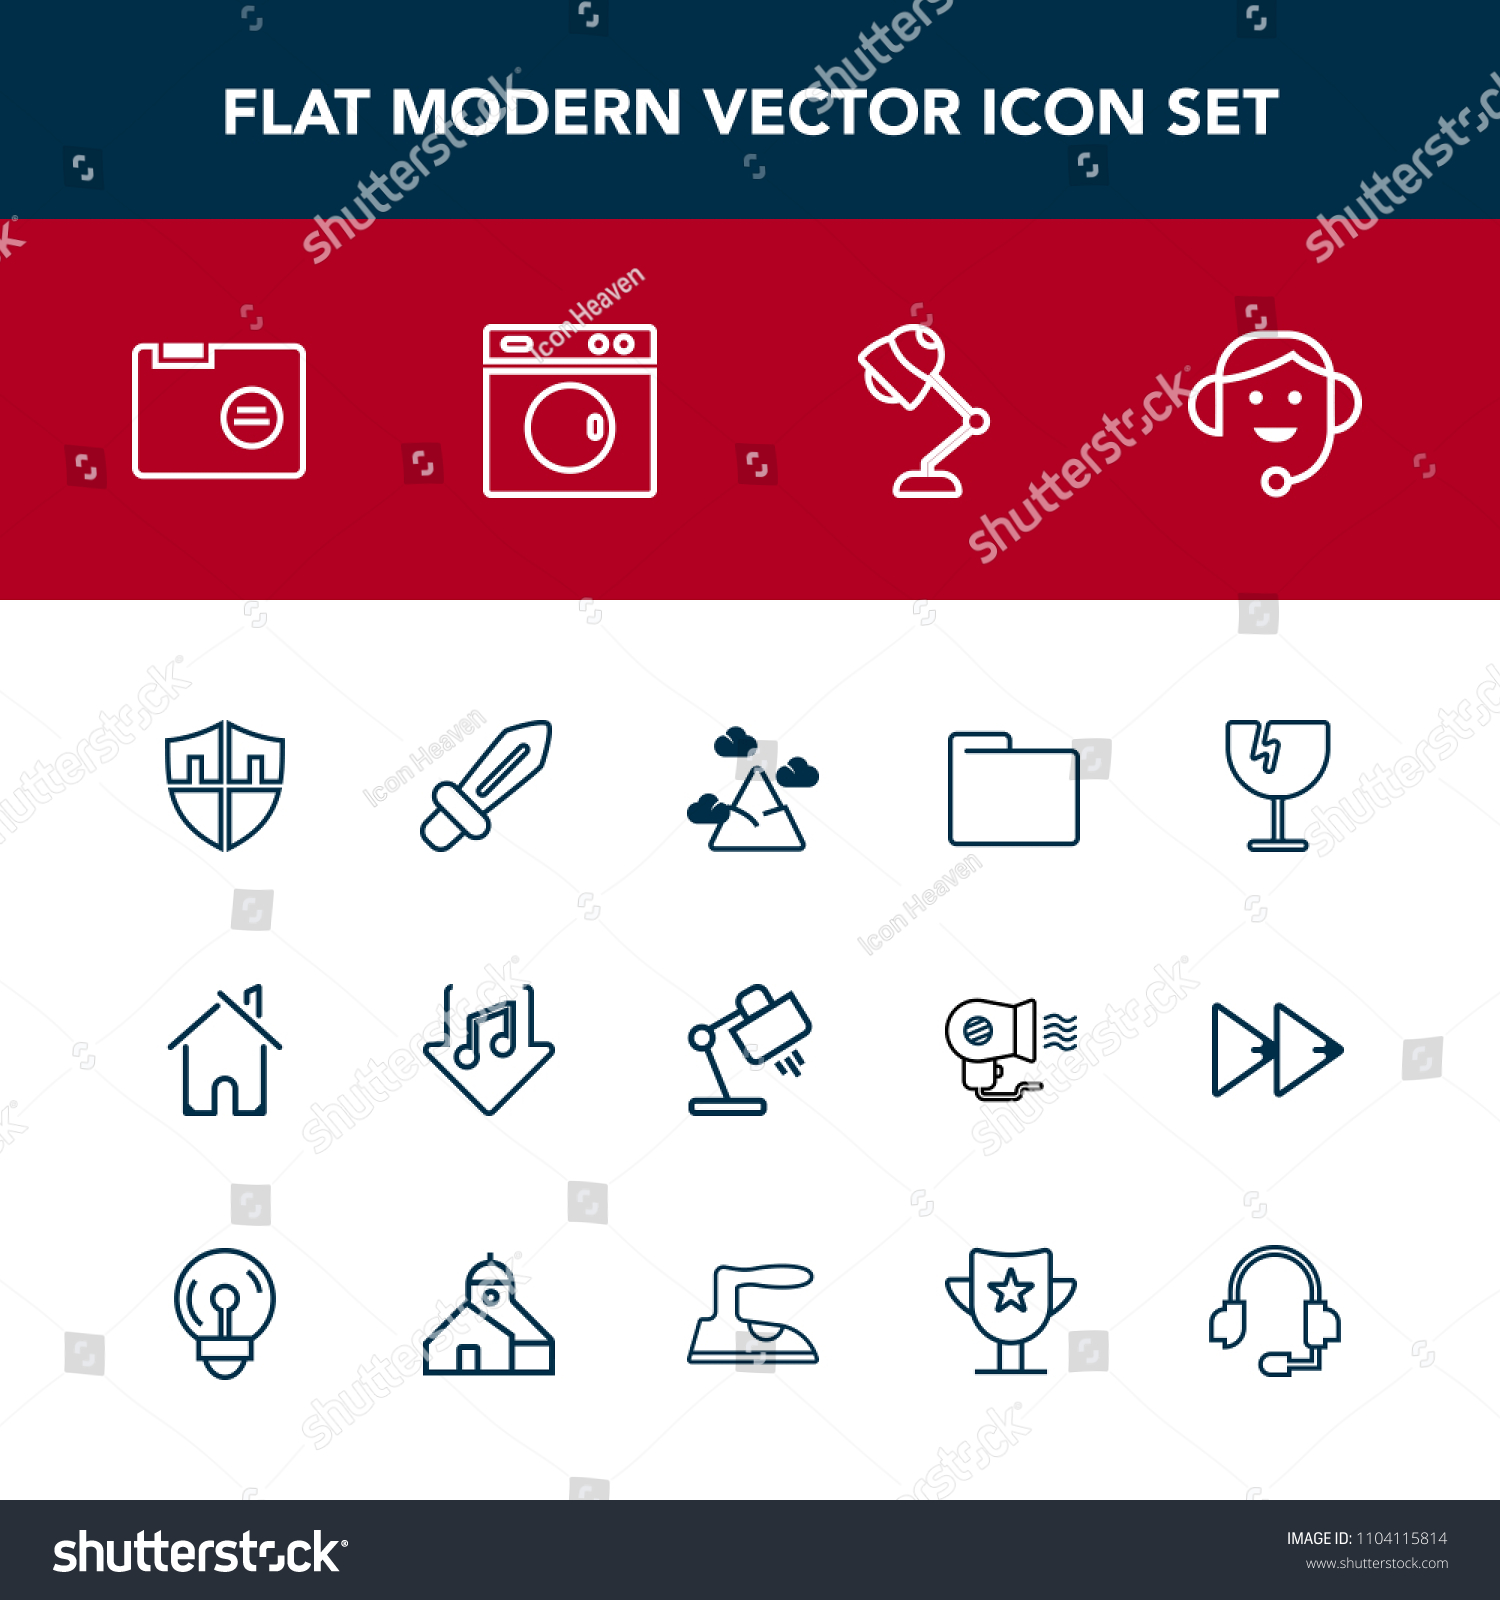 Modern Simple Vector Icon Set Sound Stock Vector HD (Royalty Free ...